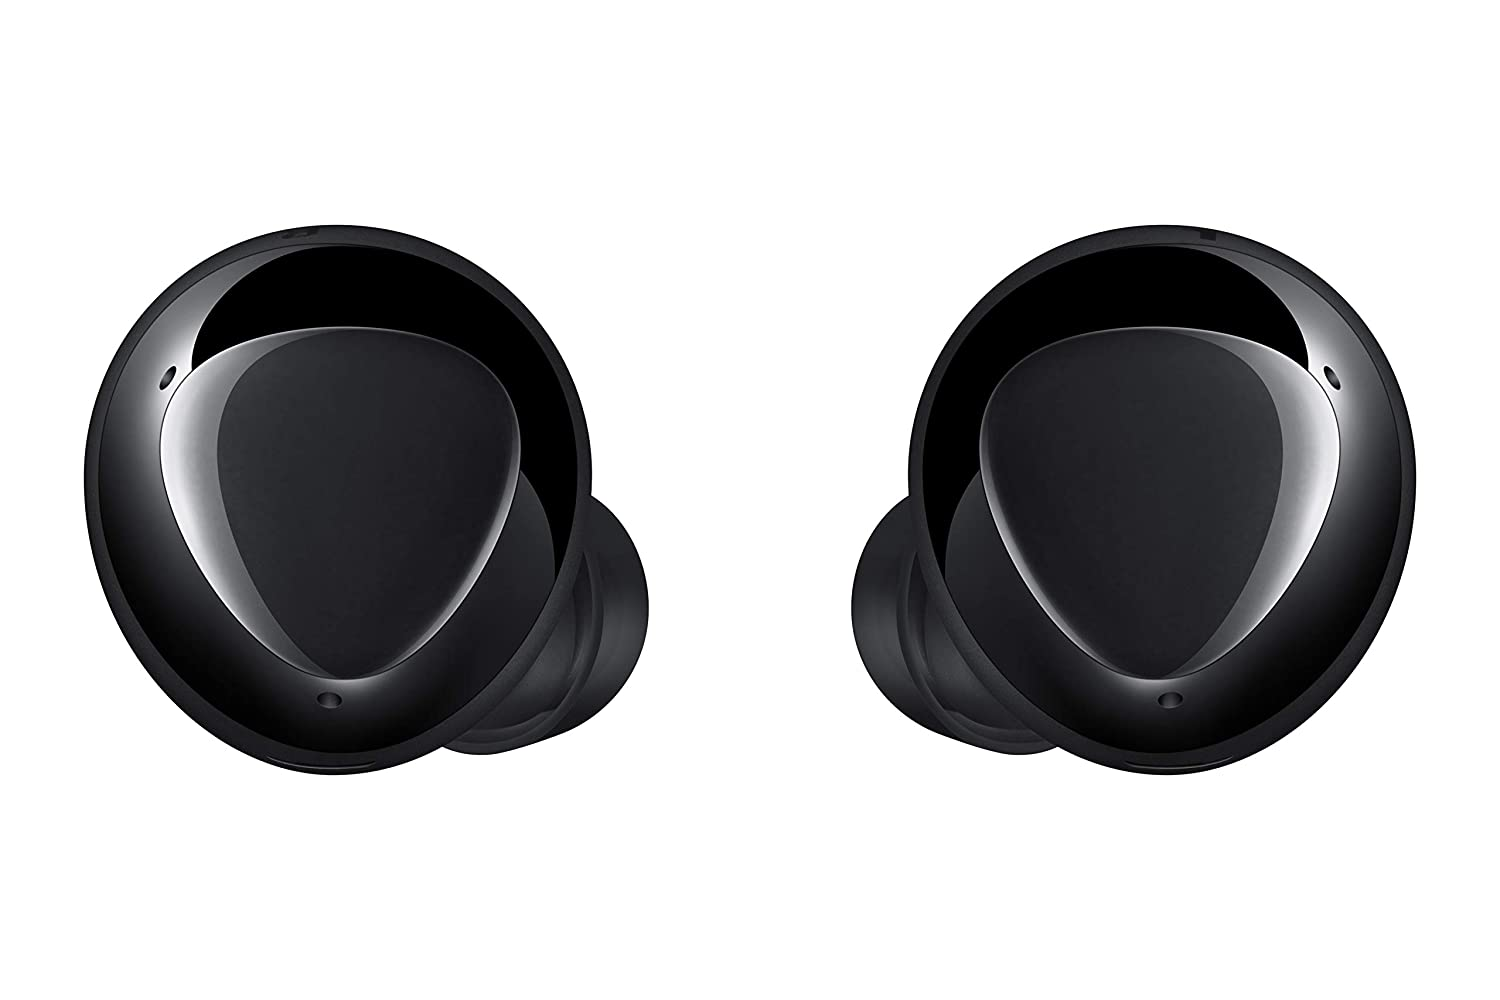 Samsung Galaxy Buds+ (Black)